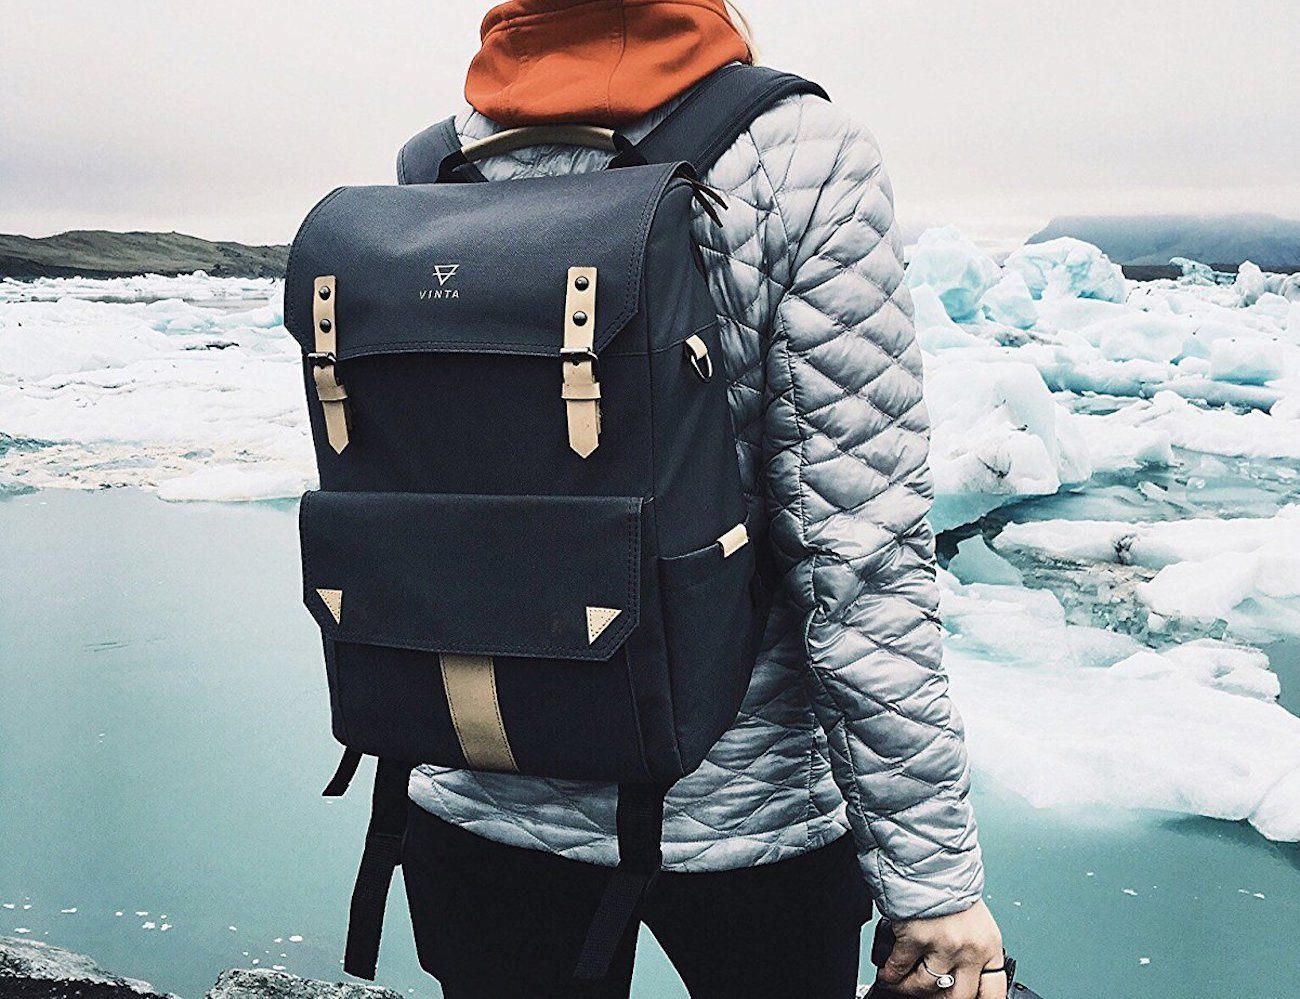 VINTA Modern Traveler Type II Camera Backpack